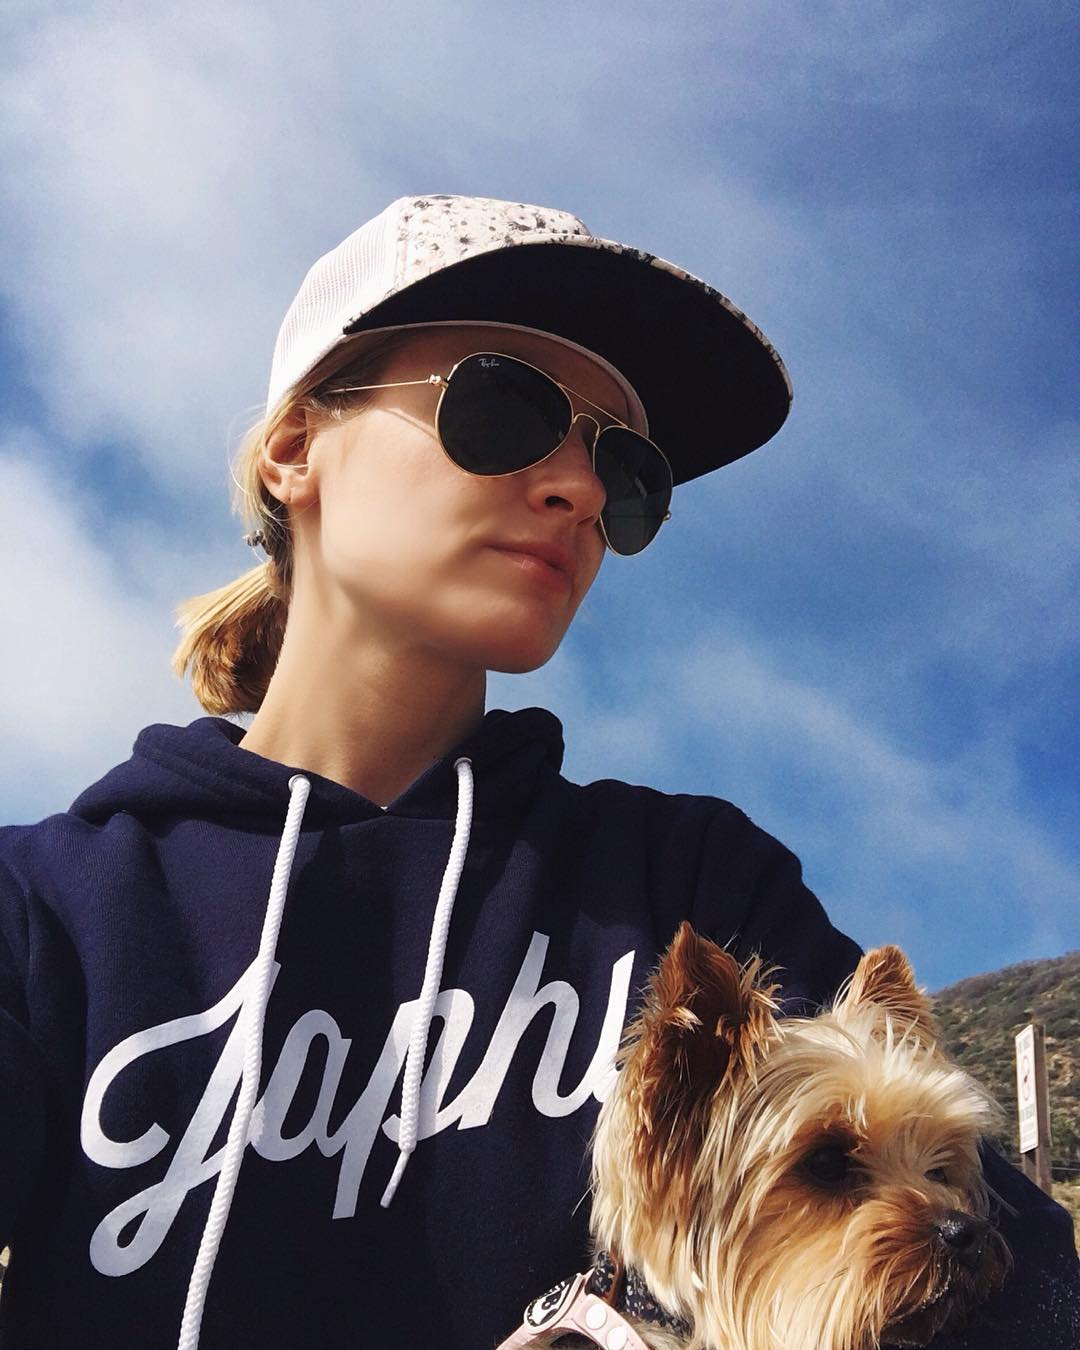 Honorary crew member and all around B-A @bethbehrsreal rocking her Japhy threads and soaking up sun with her partner in crime this past weekend.  @japhysurfco #japhysurfco #japhycrew #japhypup #surf #surfing #CA #classic #beachnik #beachbum #nofilter...